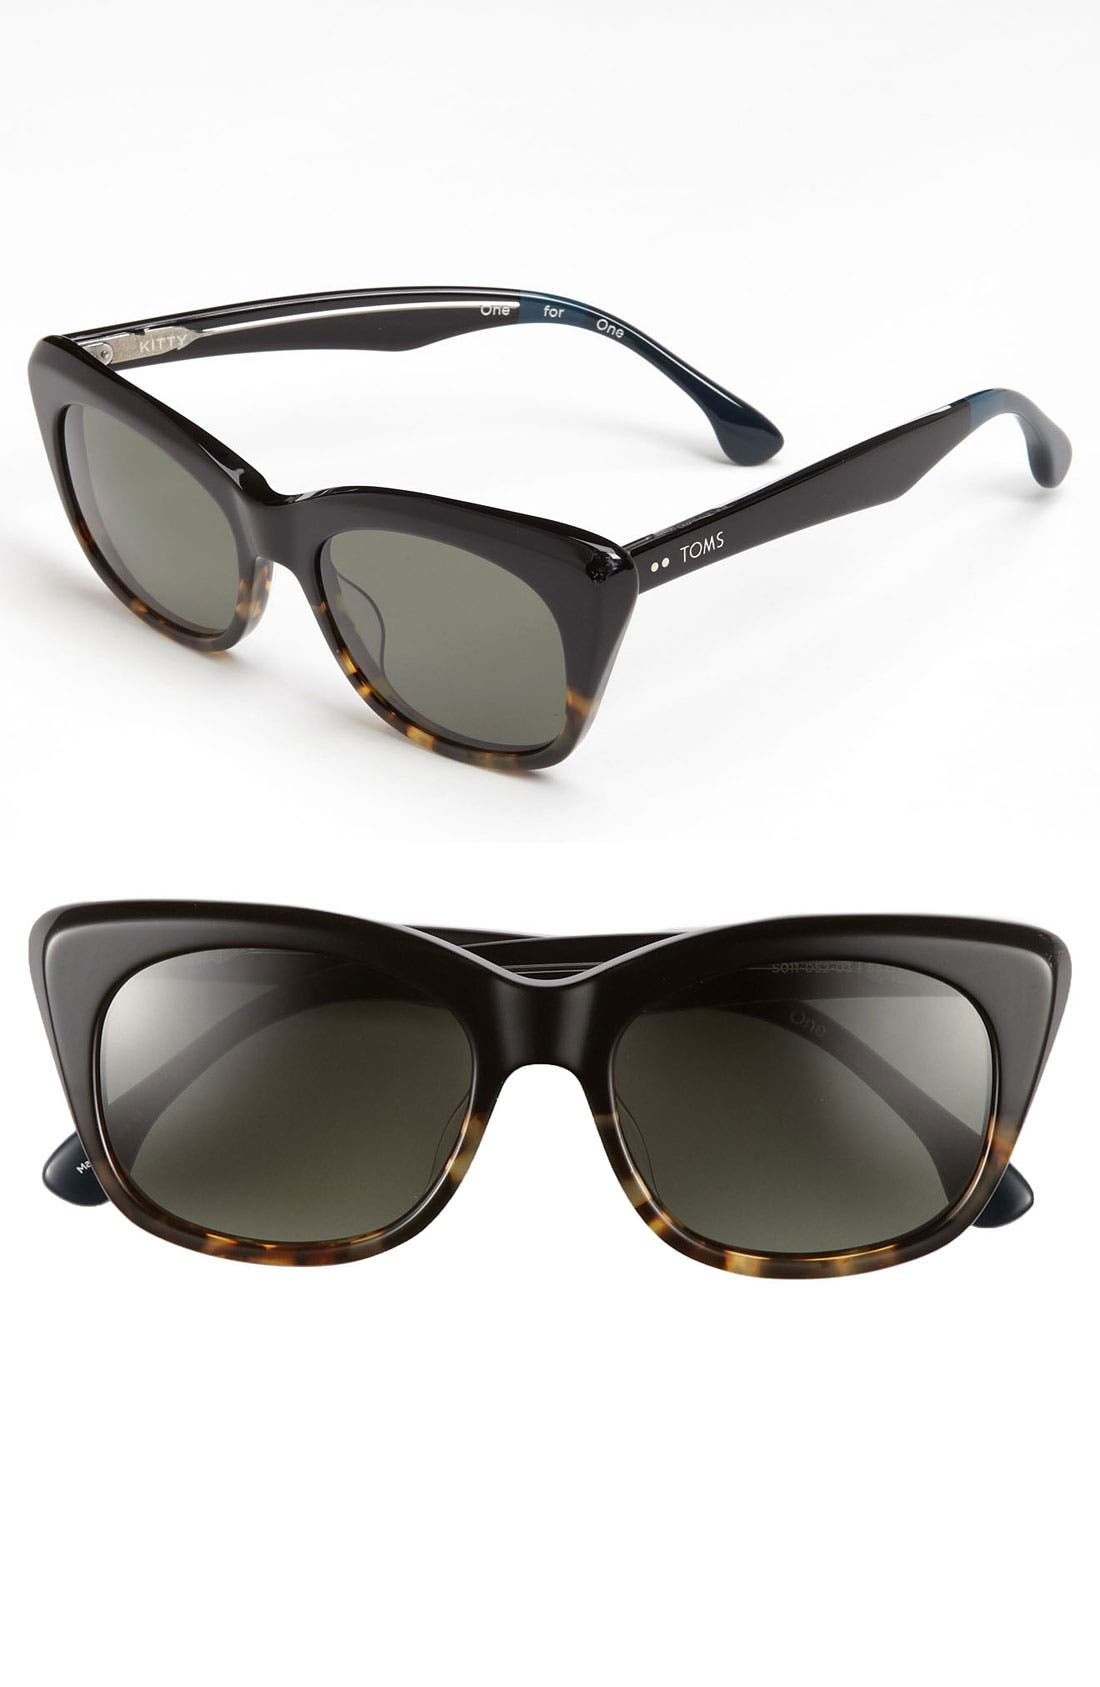 Main Image - TOMS 'Kitty' 53mm Sunglasses